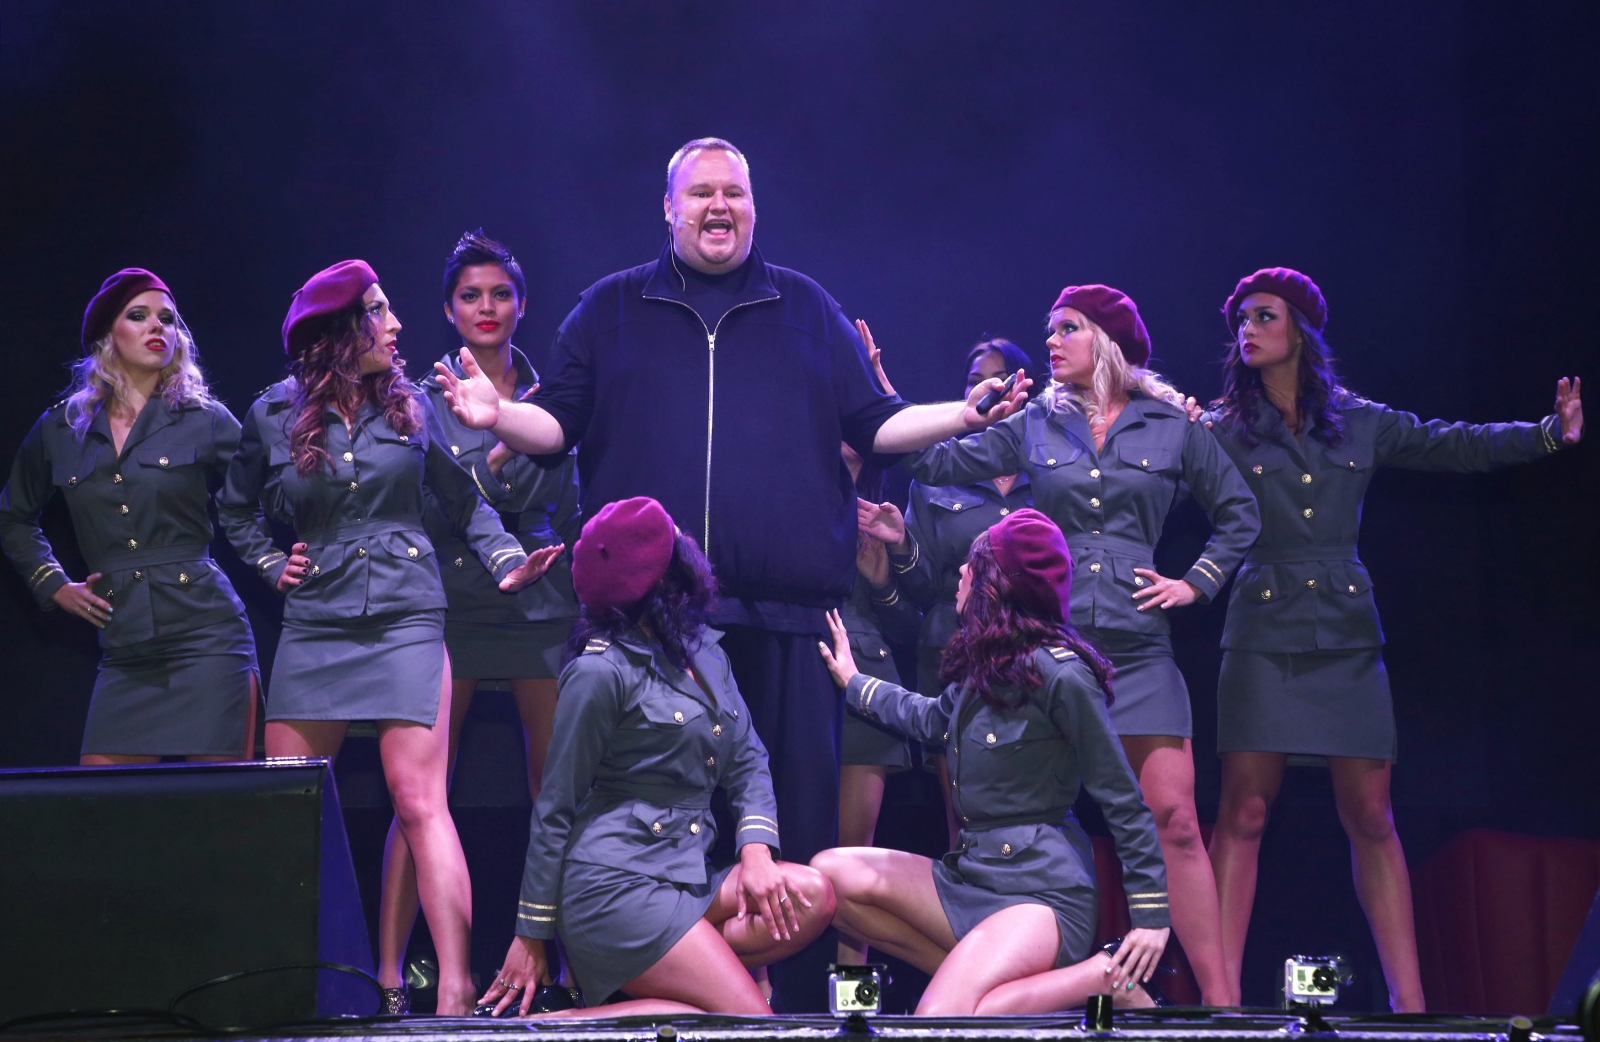 Kim Dotcom in one of his more flamboyant moments, surrounded by dancers at his opening party of Mega